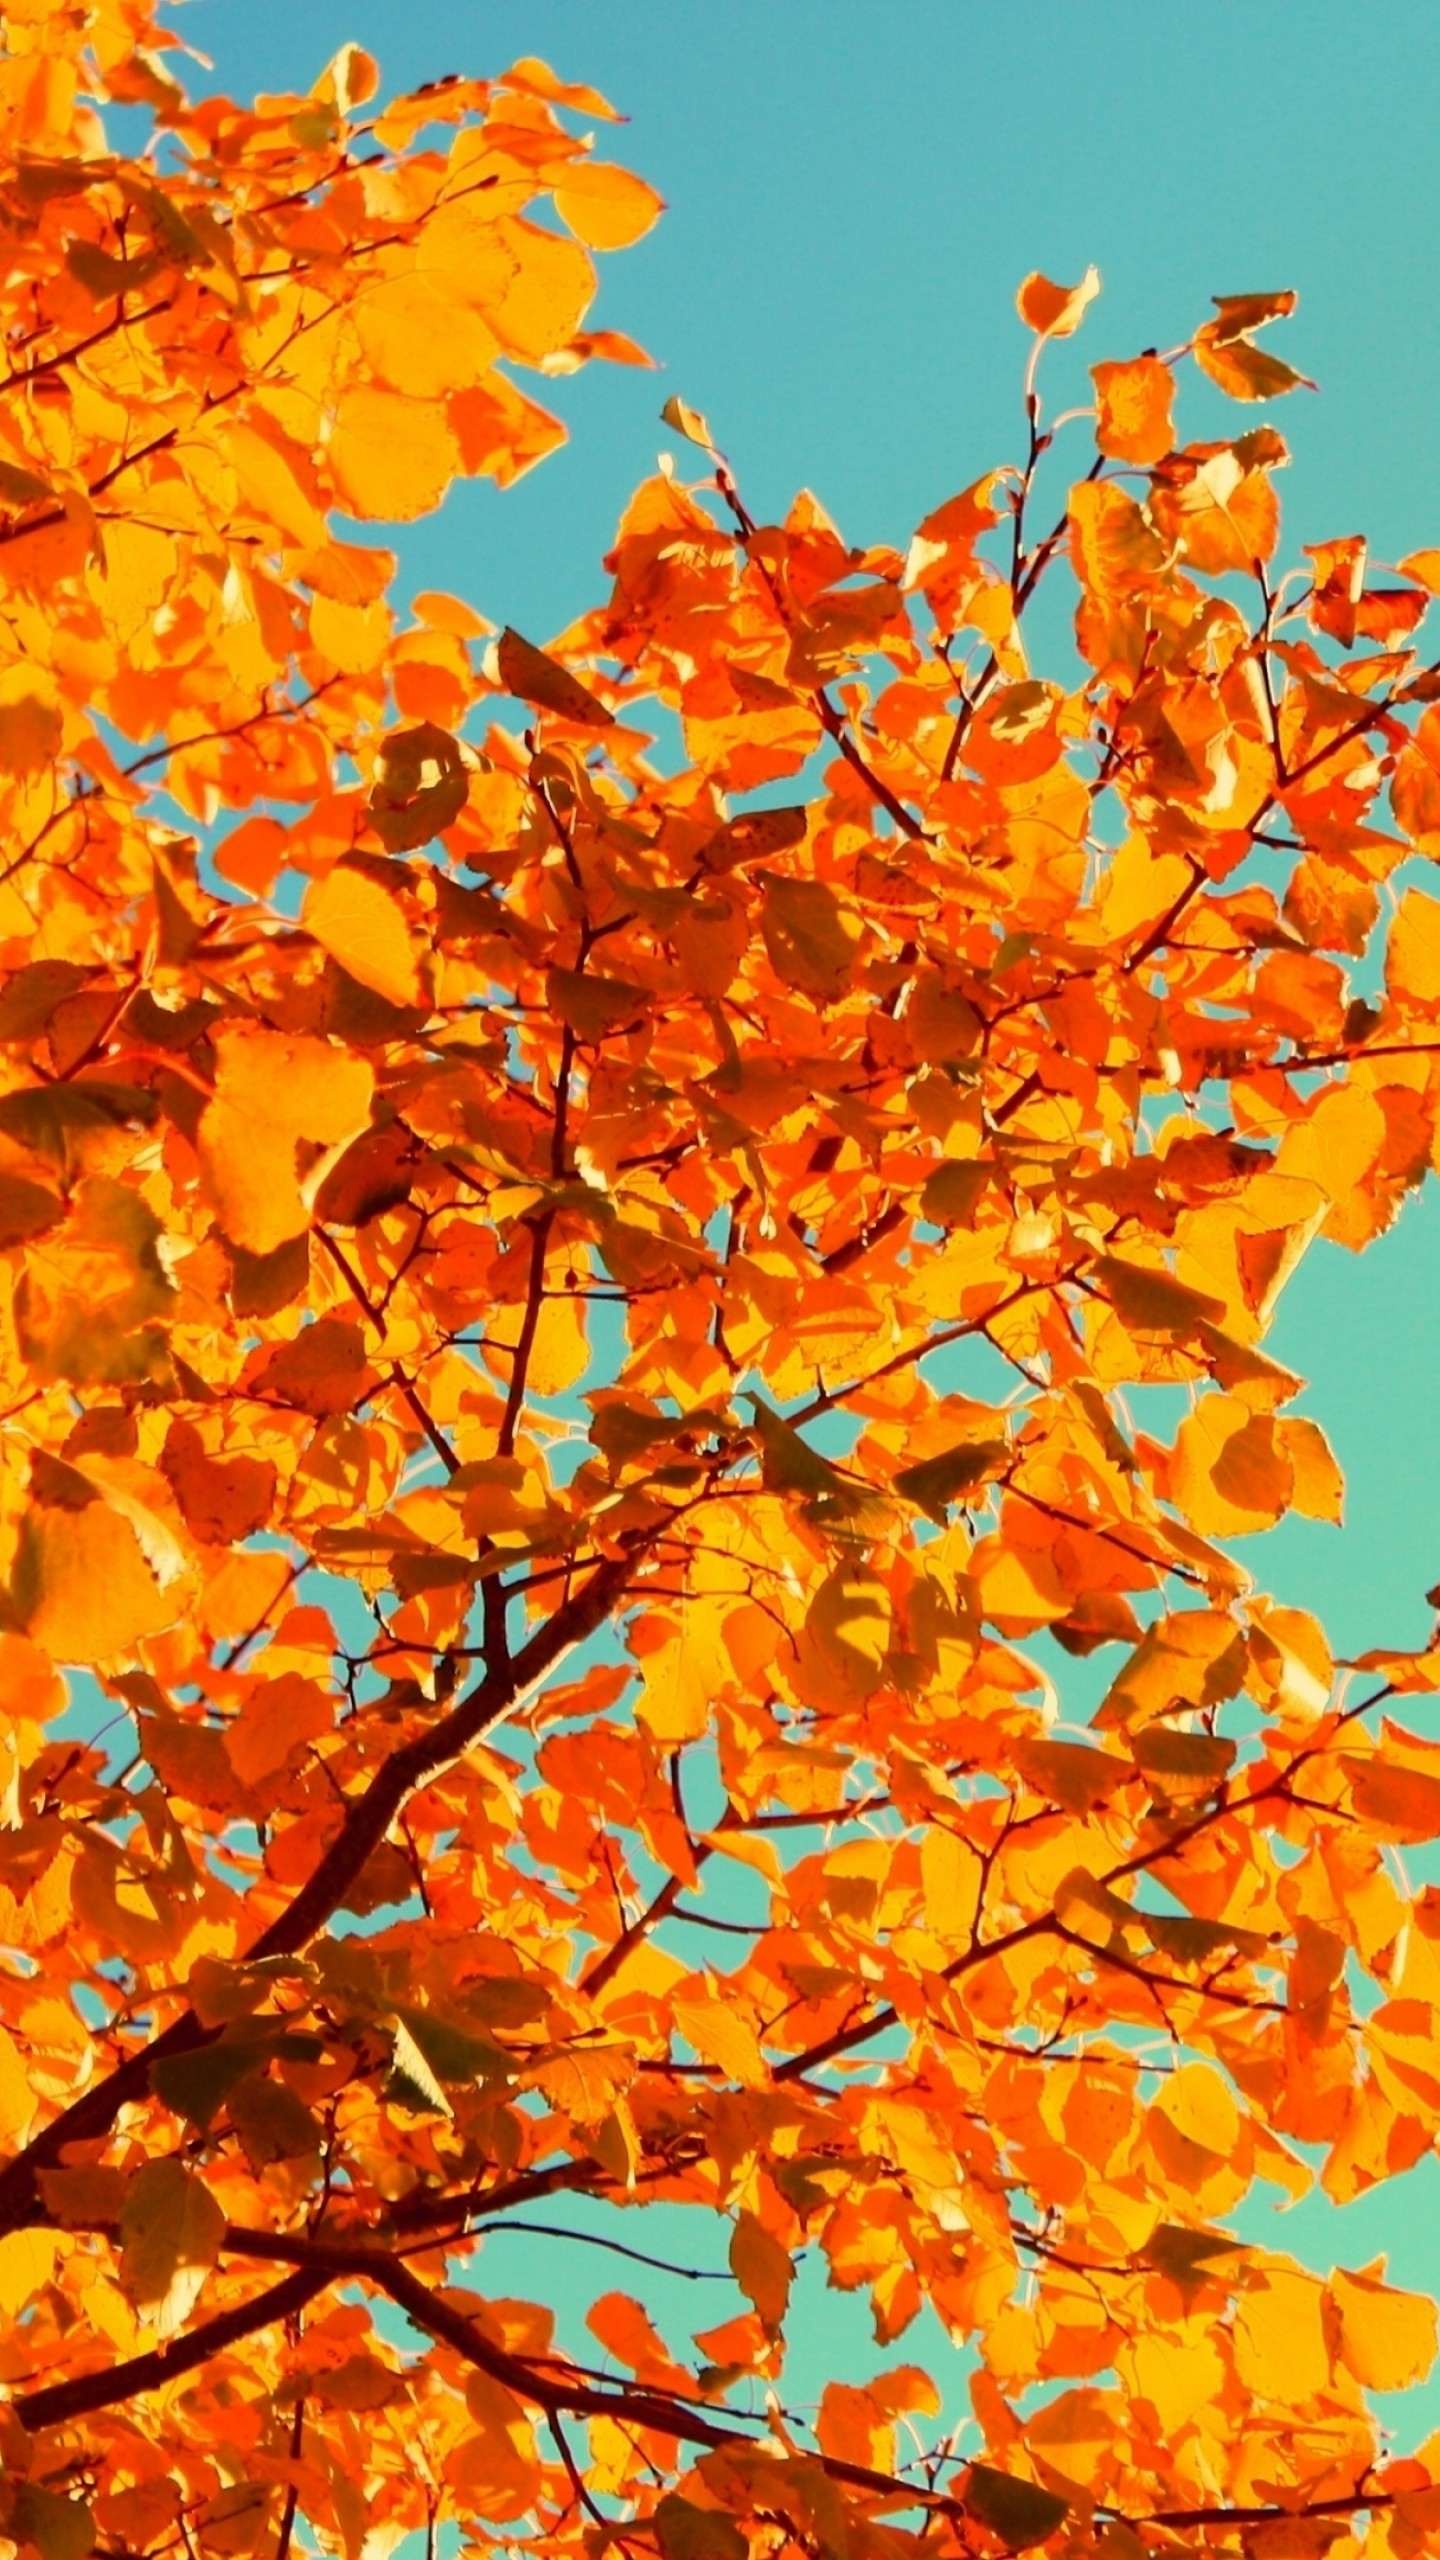 Fall Leaves Pictures Wallpaper Wallpaper Tree 5k 4k Wallpaper Sky Autumn Yellow